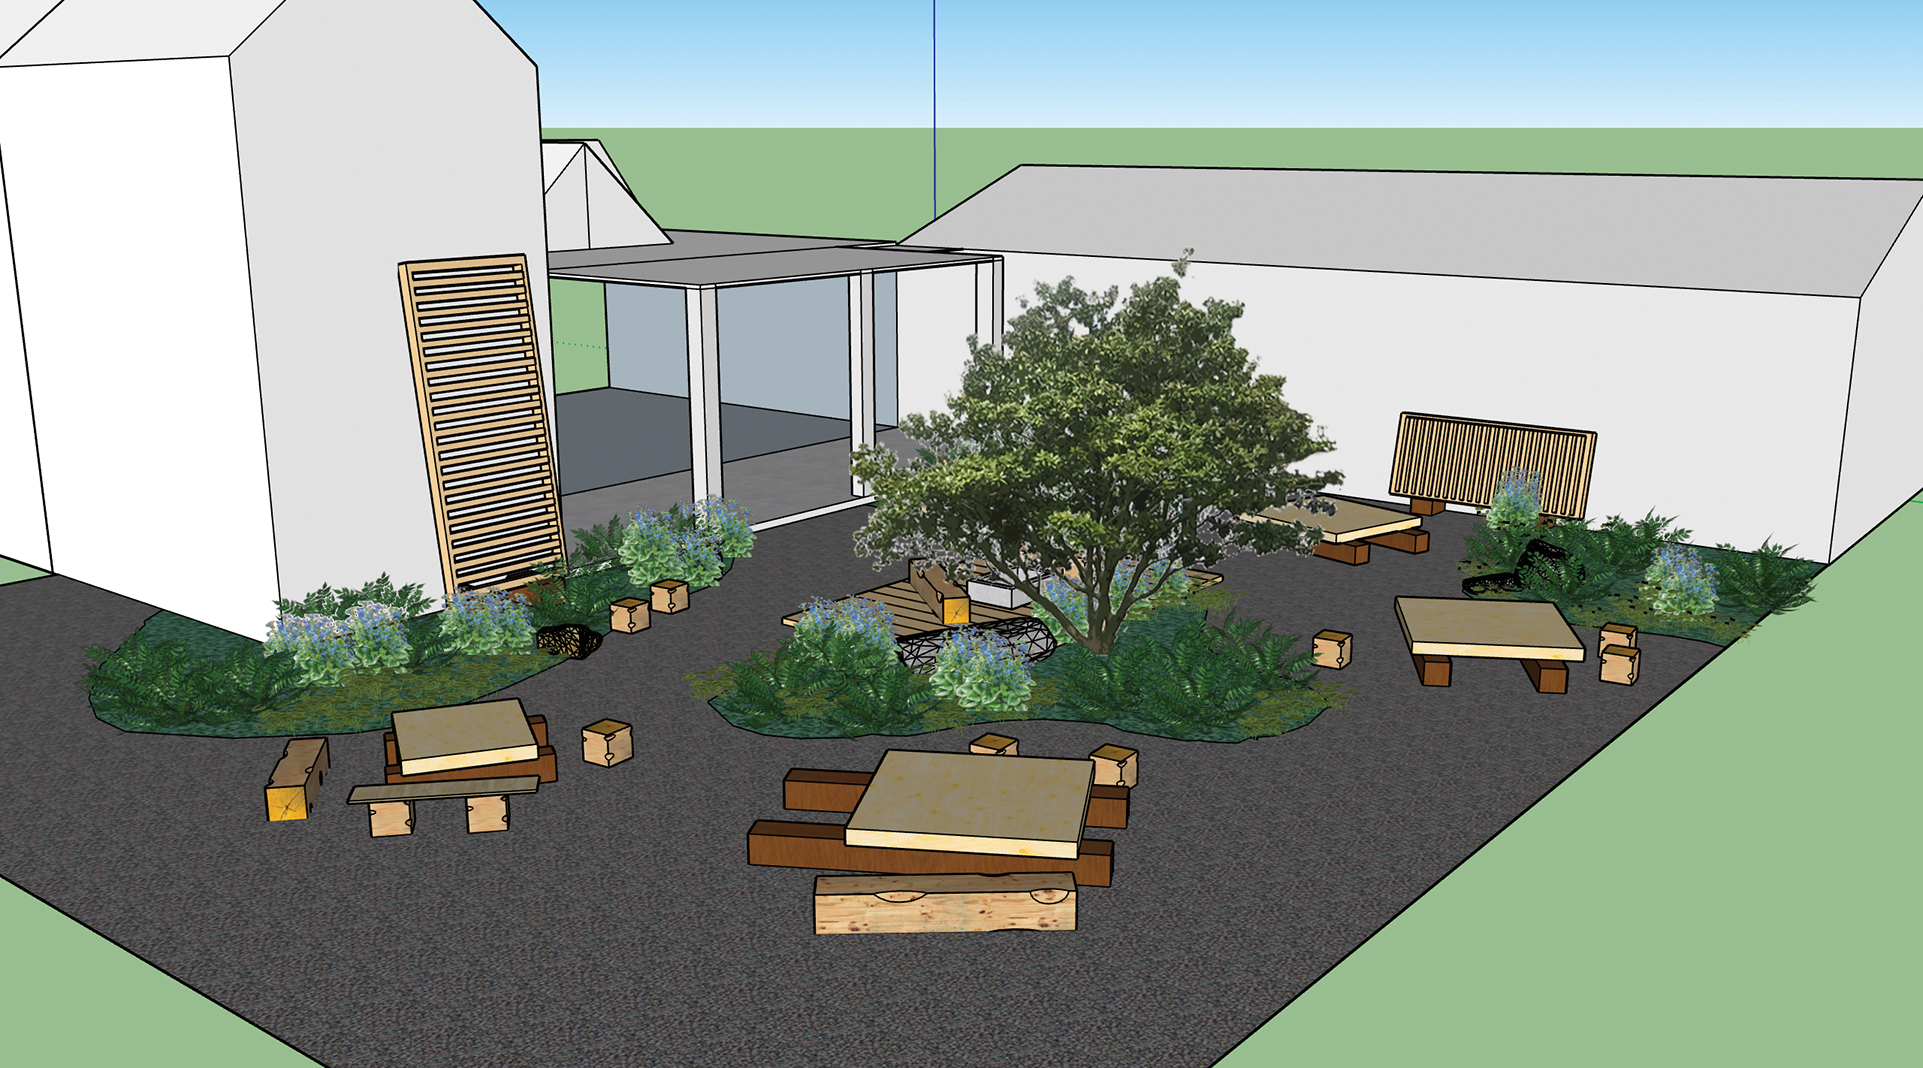 Rendering of Franconia Sculpture Park's outdoor seating area